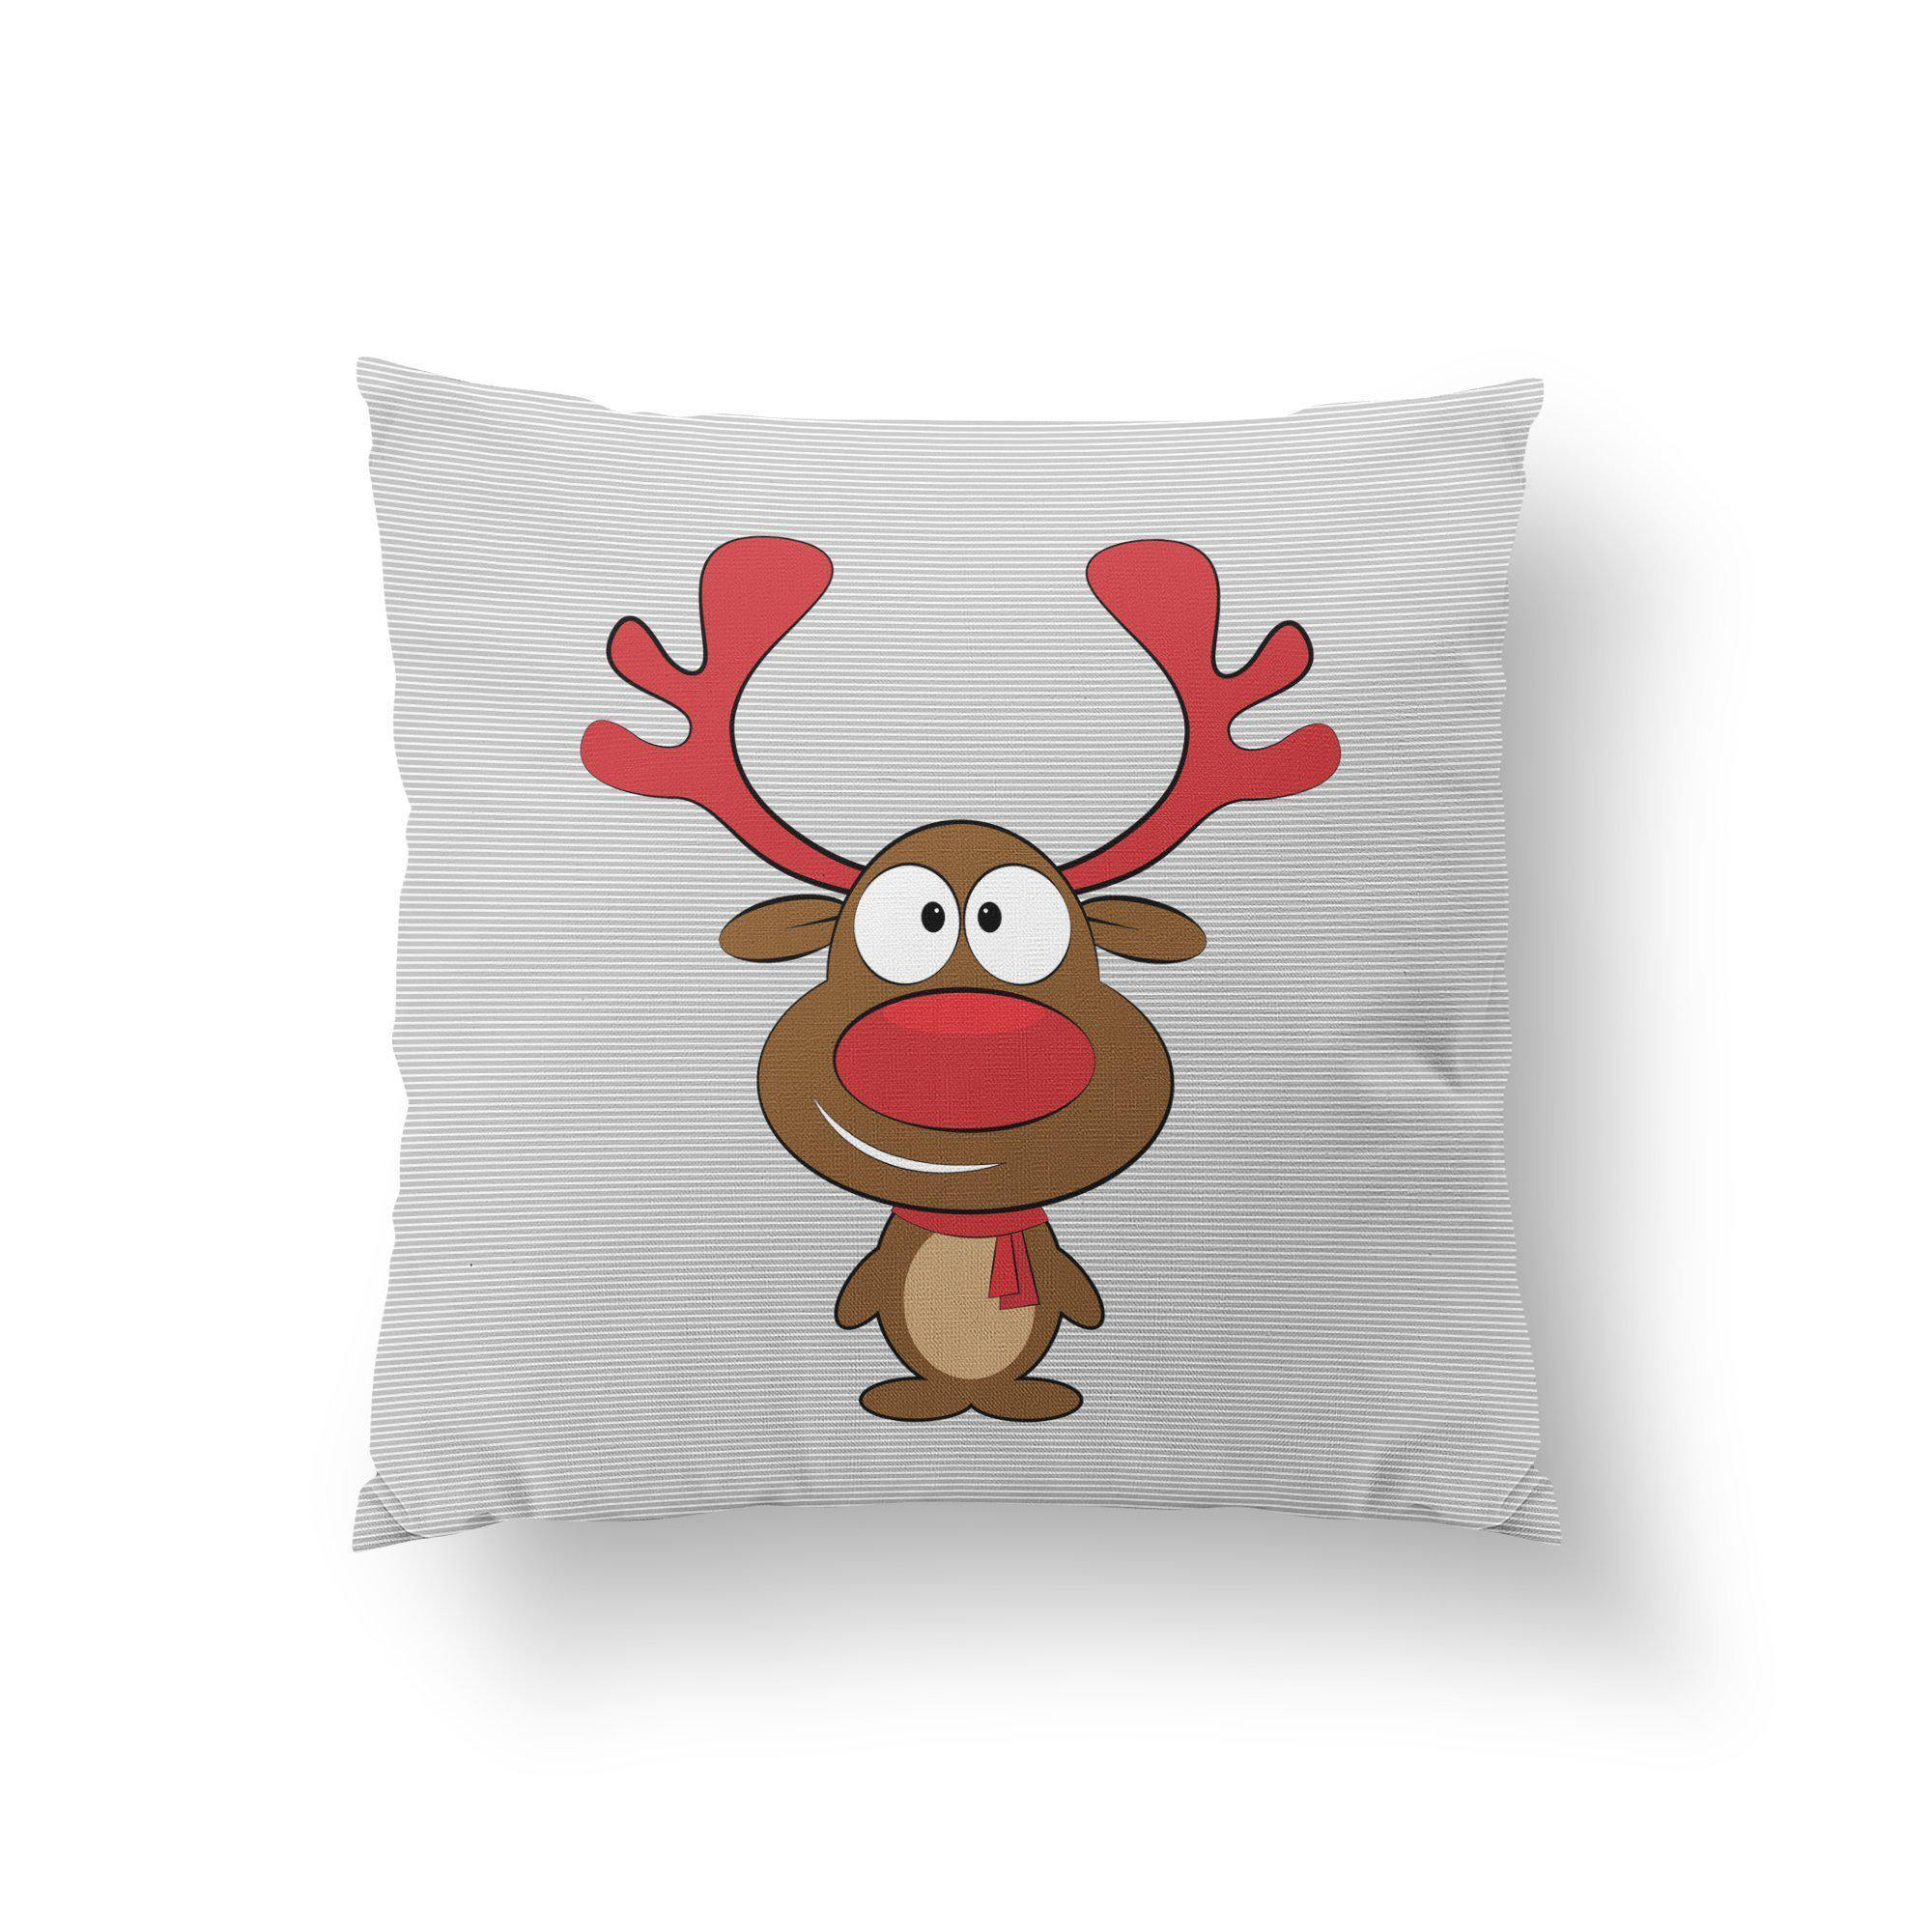 Reindeer Throw Pillow - Pillow Covers - W.FRANCIS